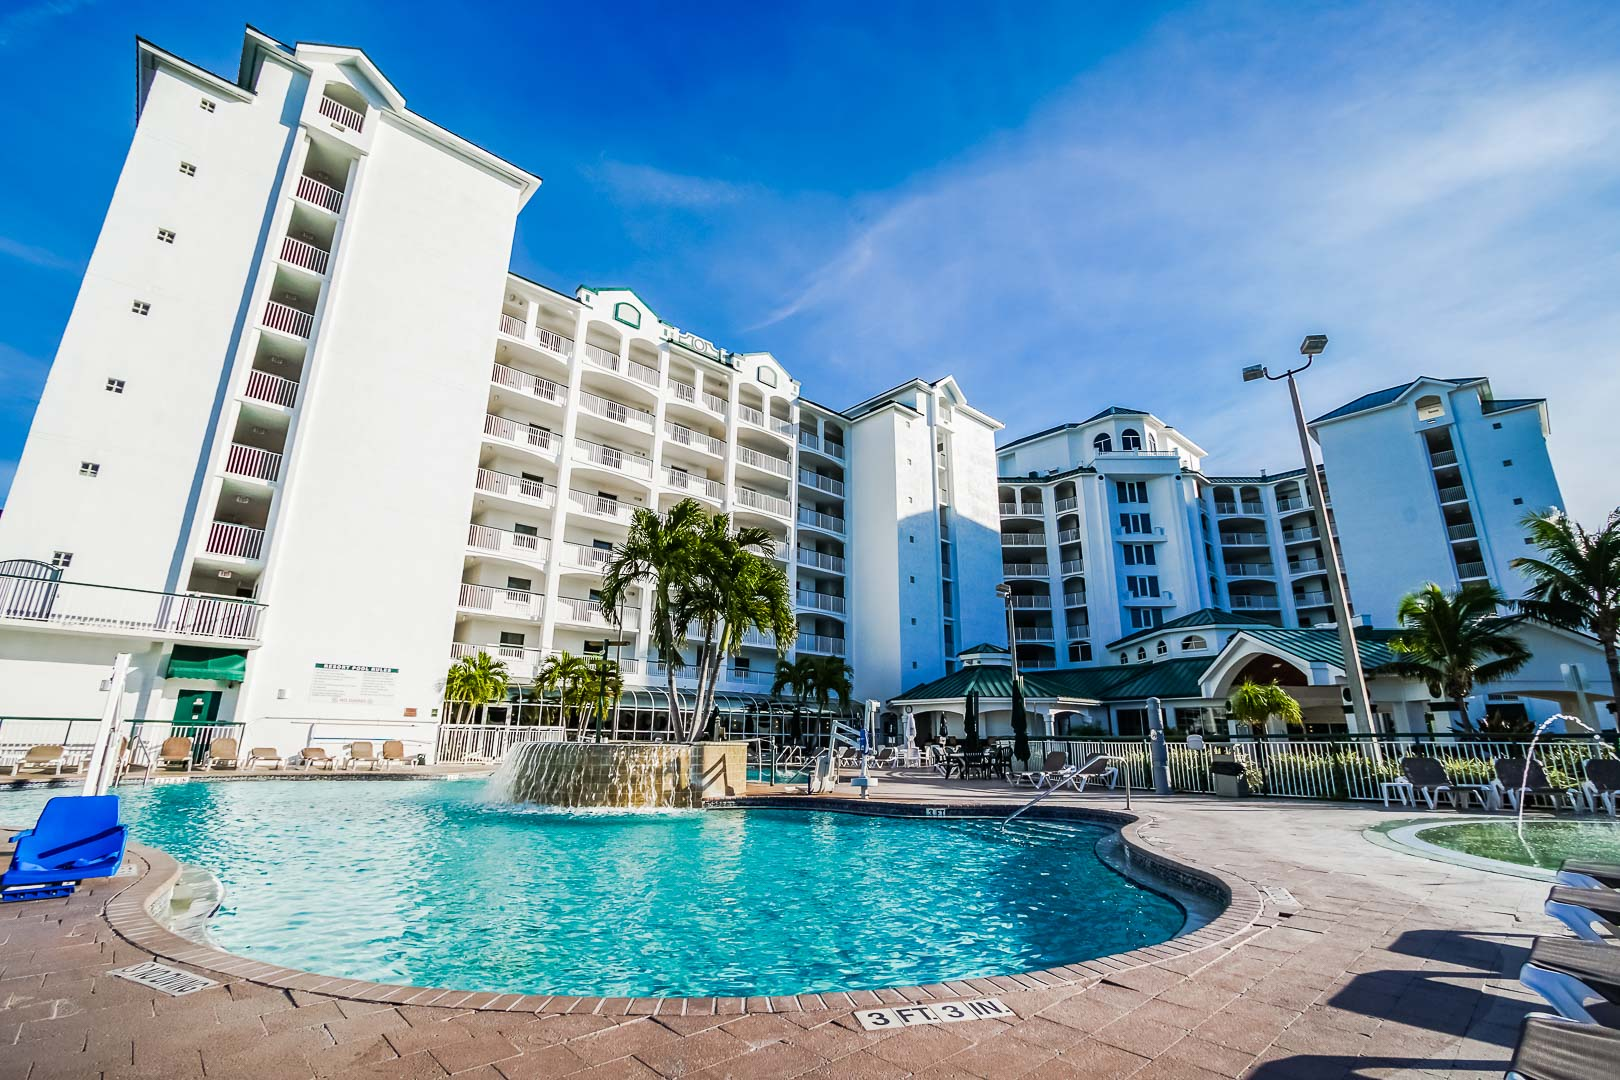 A stoic resort view with a pool at VRI's The Resort on Cocoa Beach in Florida.